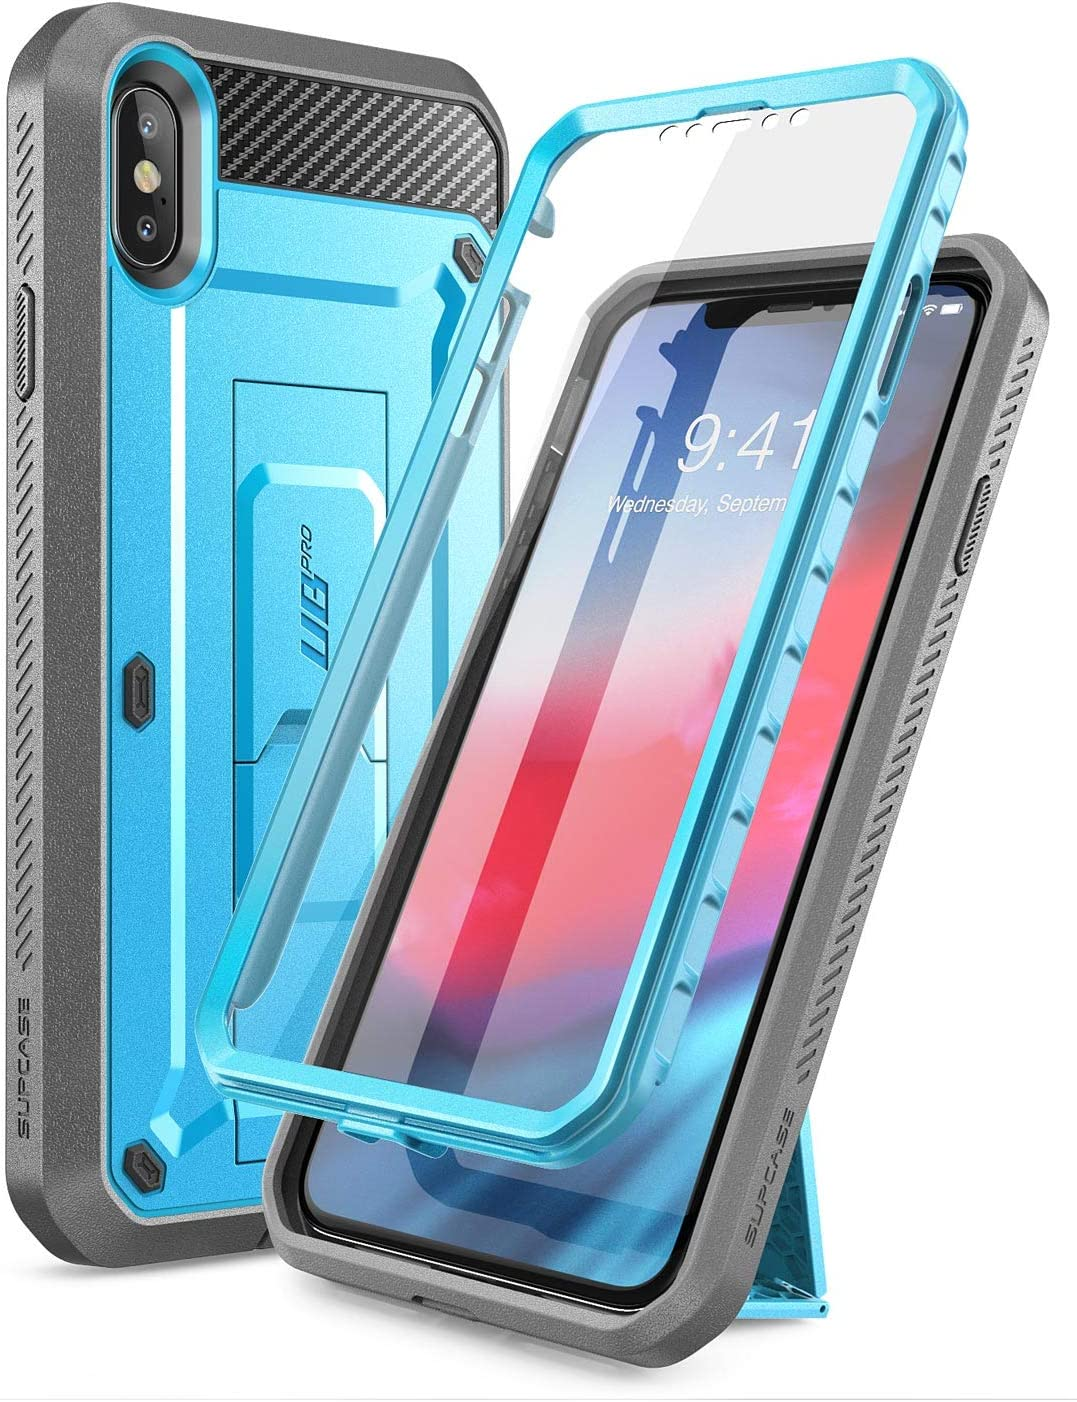 SUPCASE [Unicorn Beetle Pro Series] Case Designed for iPhone XS Max , Full-Body Rugged Holster Case with Built-In Screen Protector kickstand for iPhone XS Max 6.5 Inch 2018 Release (Blue)